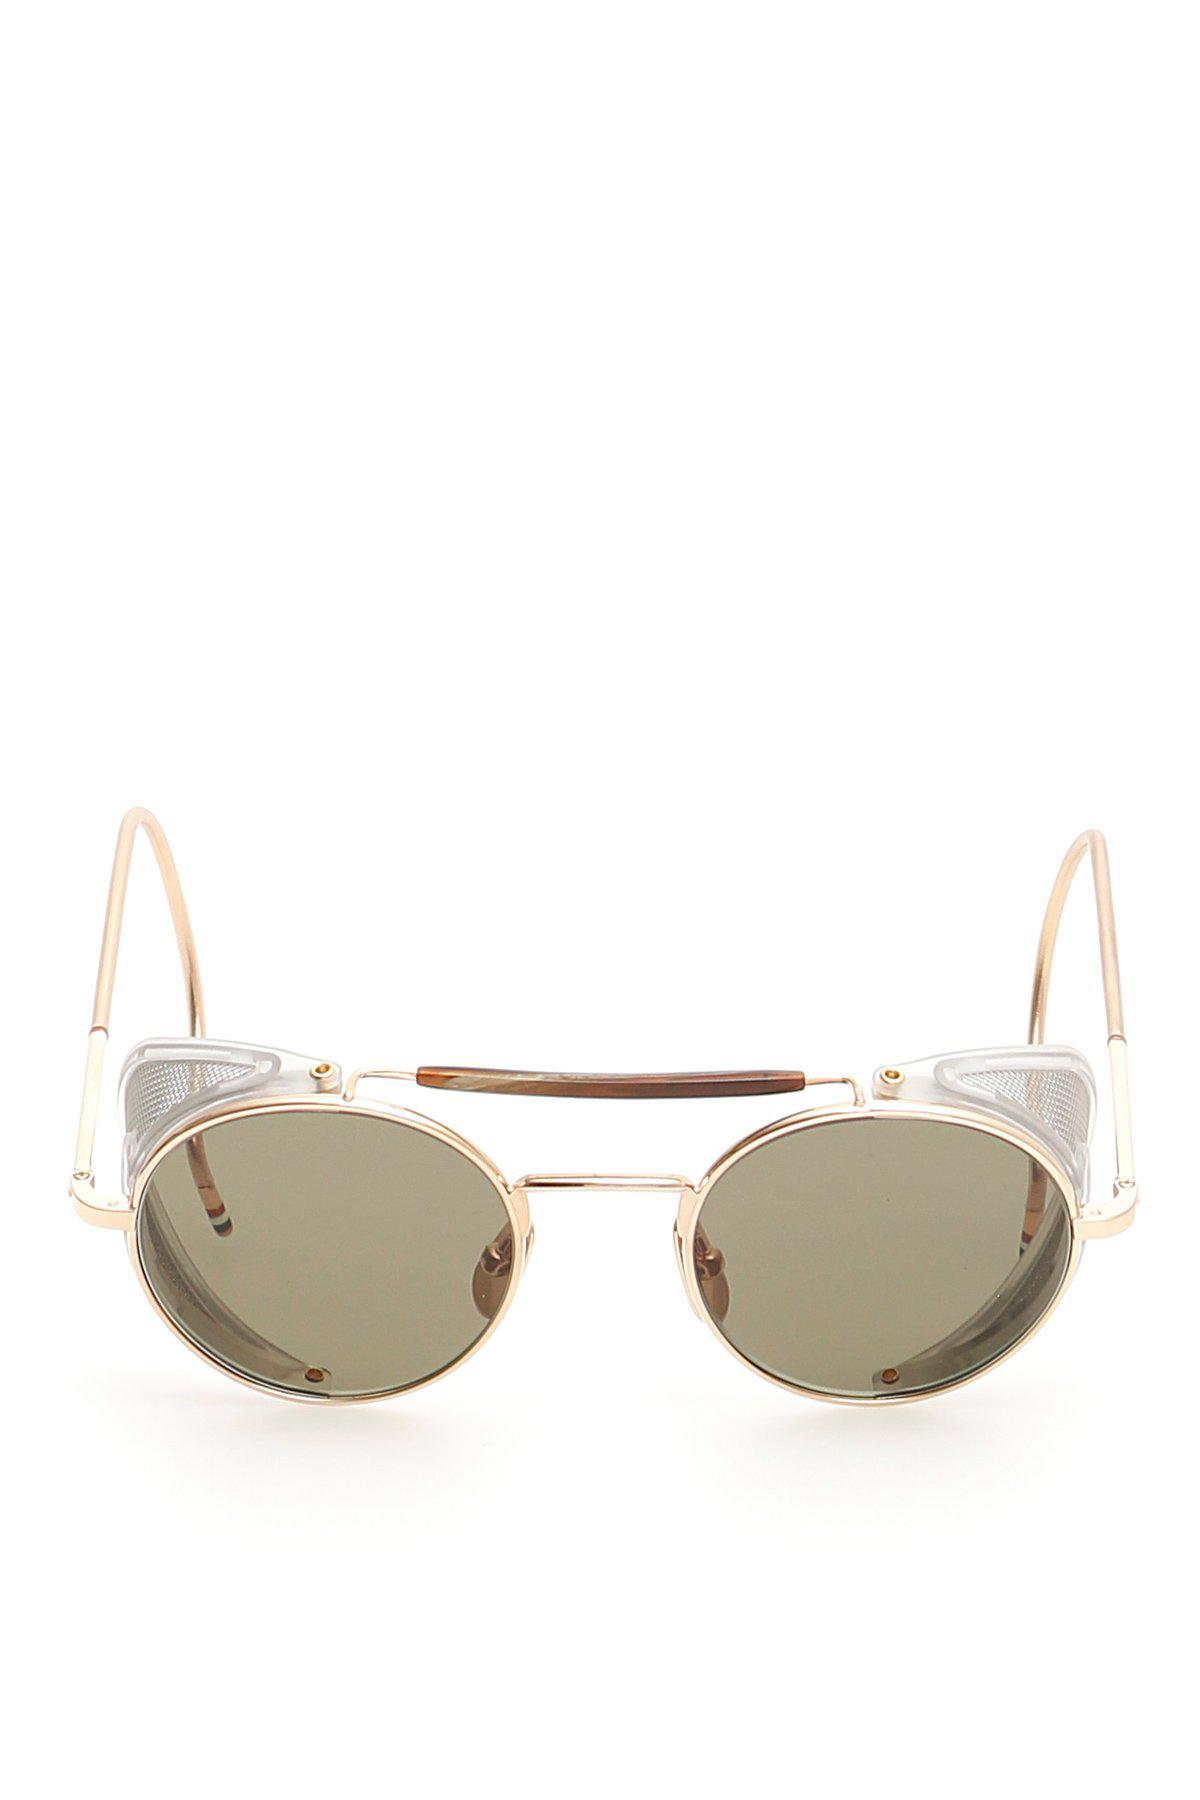 1a969d36692b Thom Browne Round Frame Gold Plated Sunglasses in Metallic - Lyst